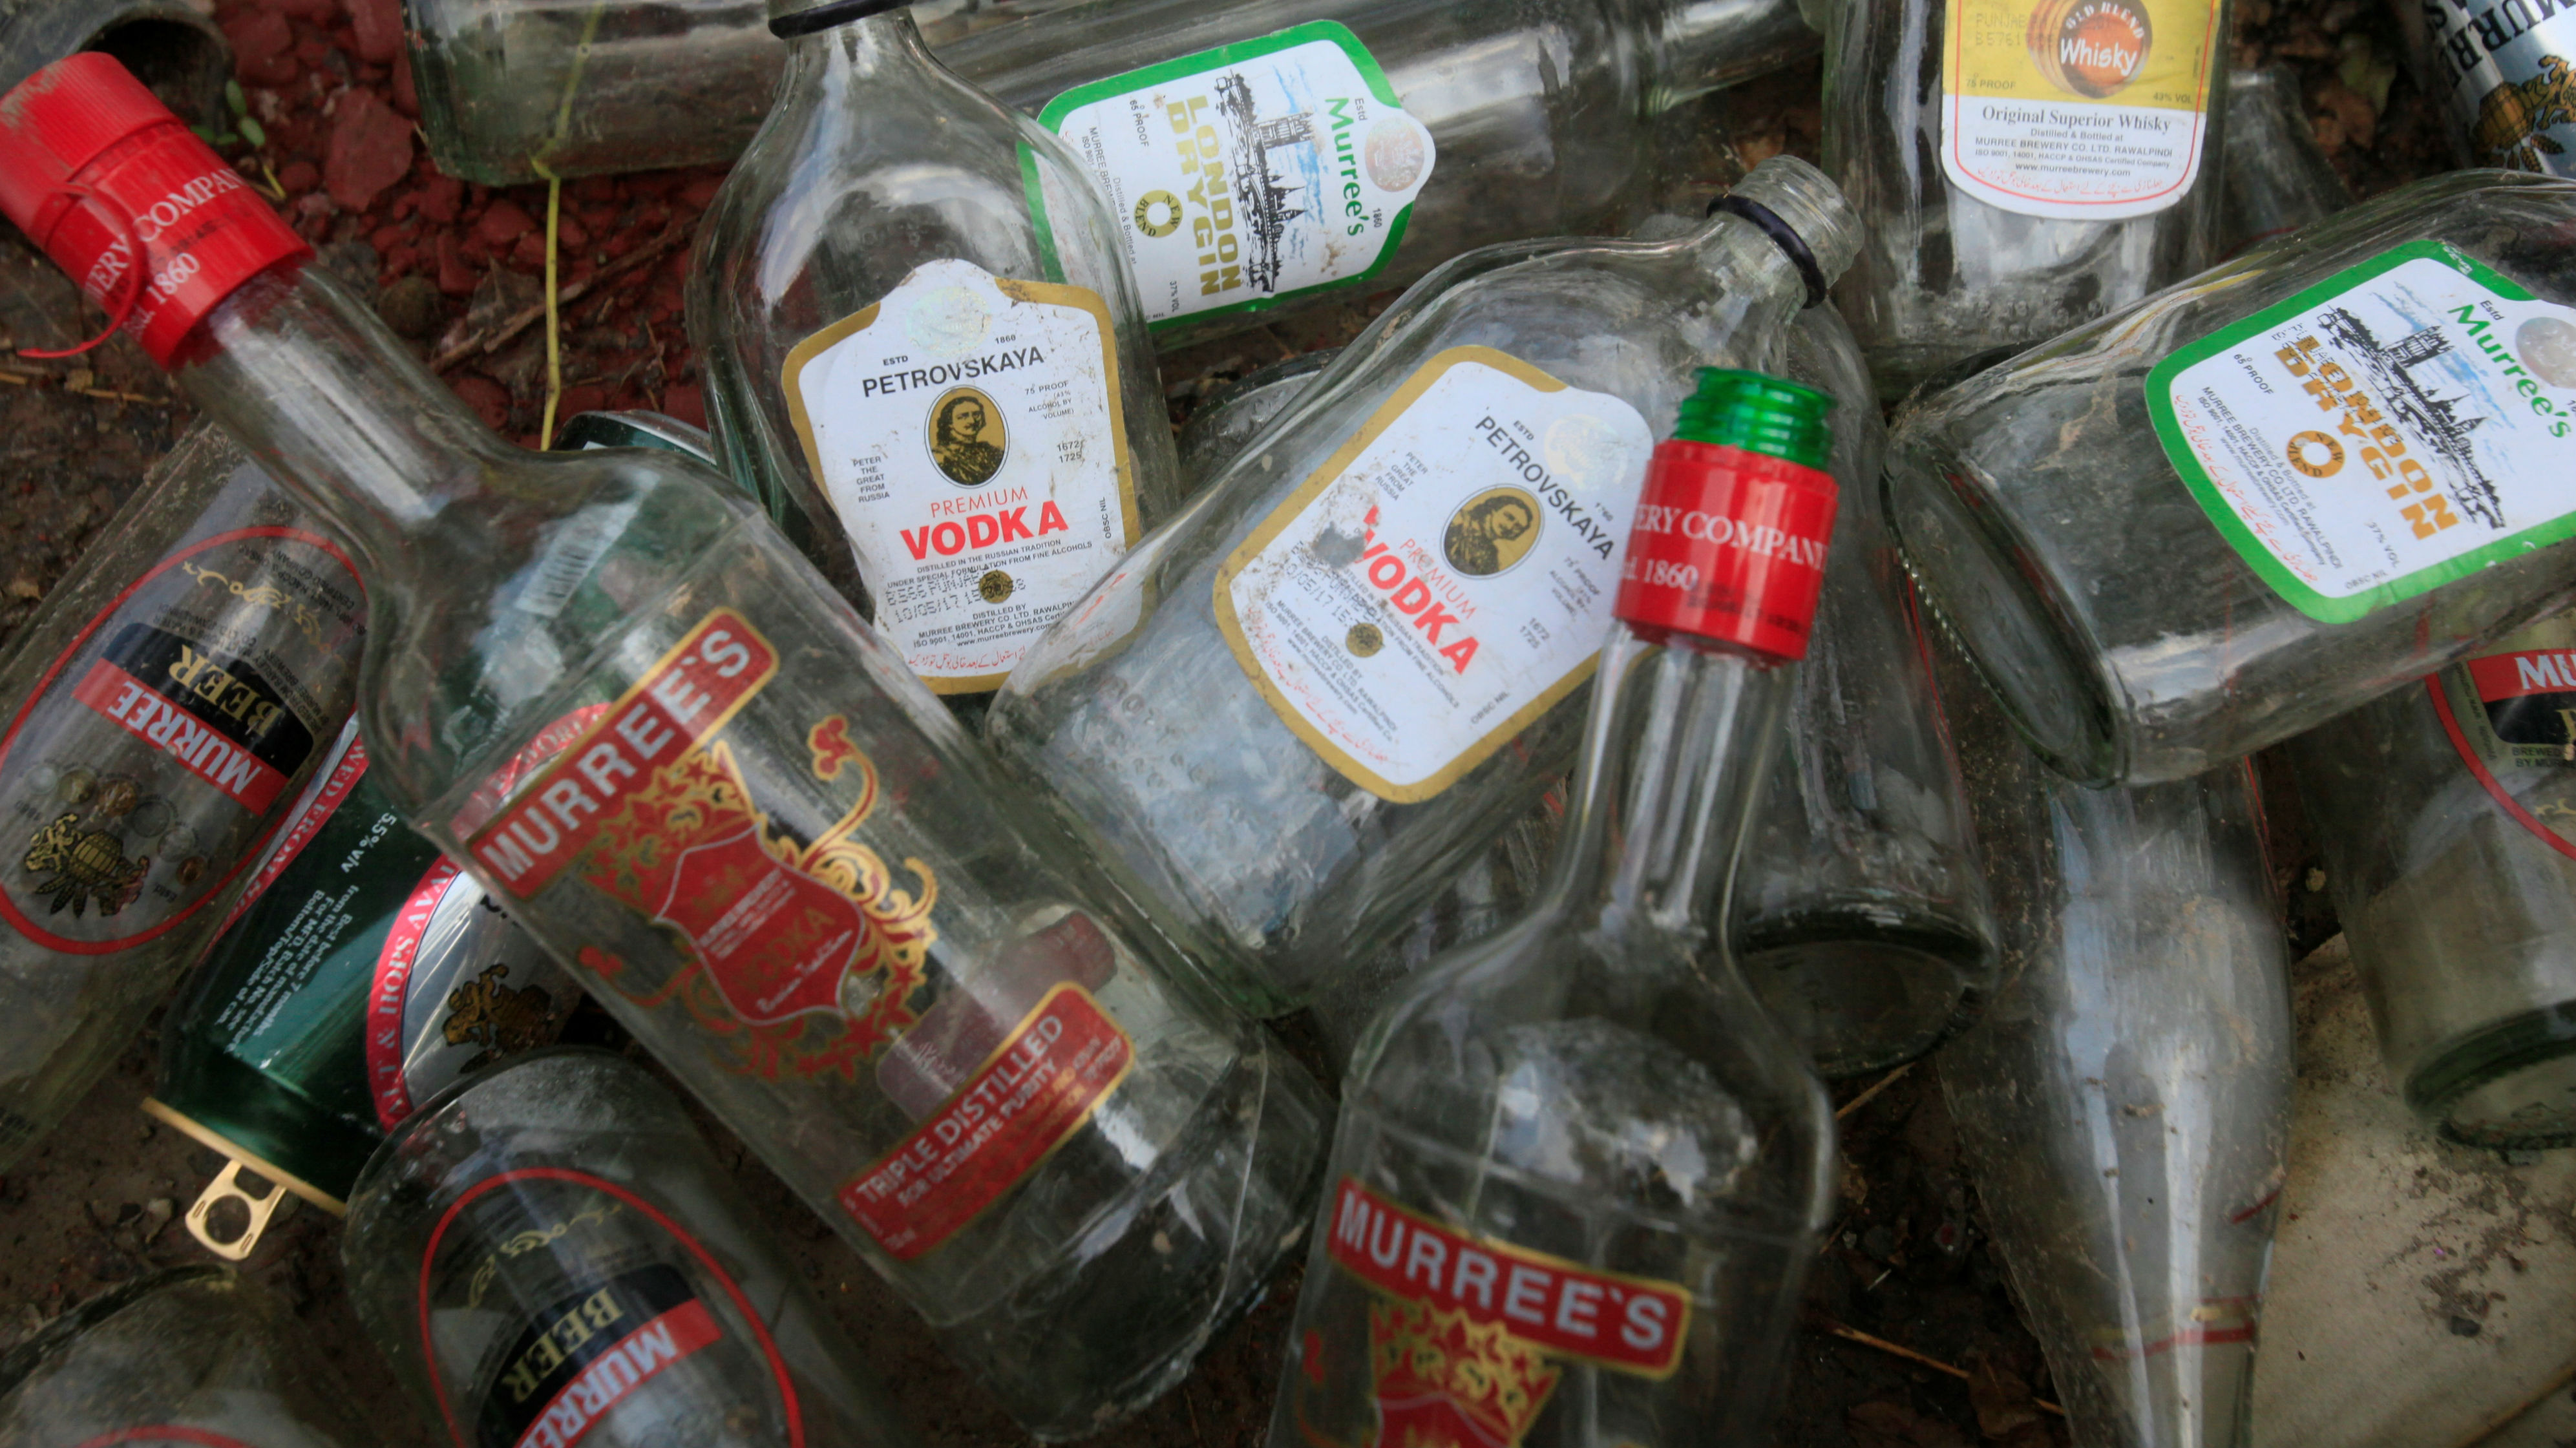 Empty liquor bottles in a pile.